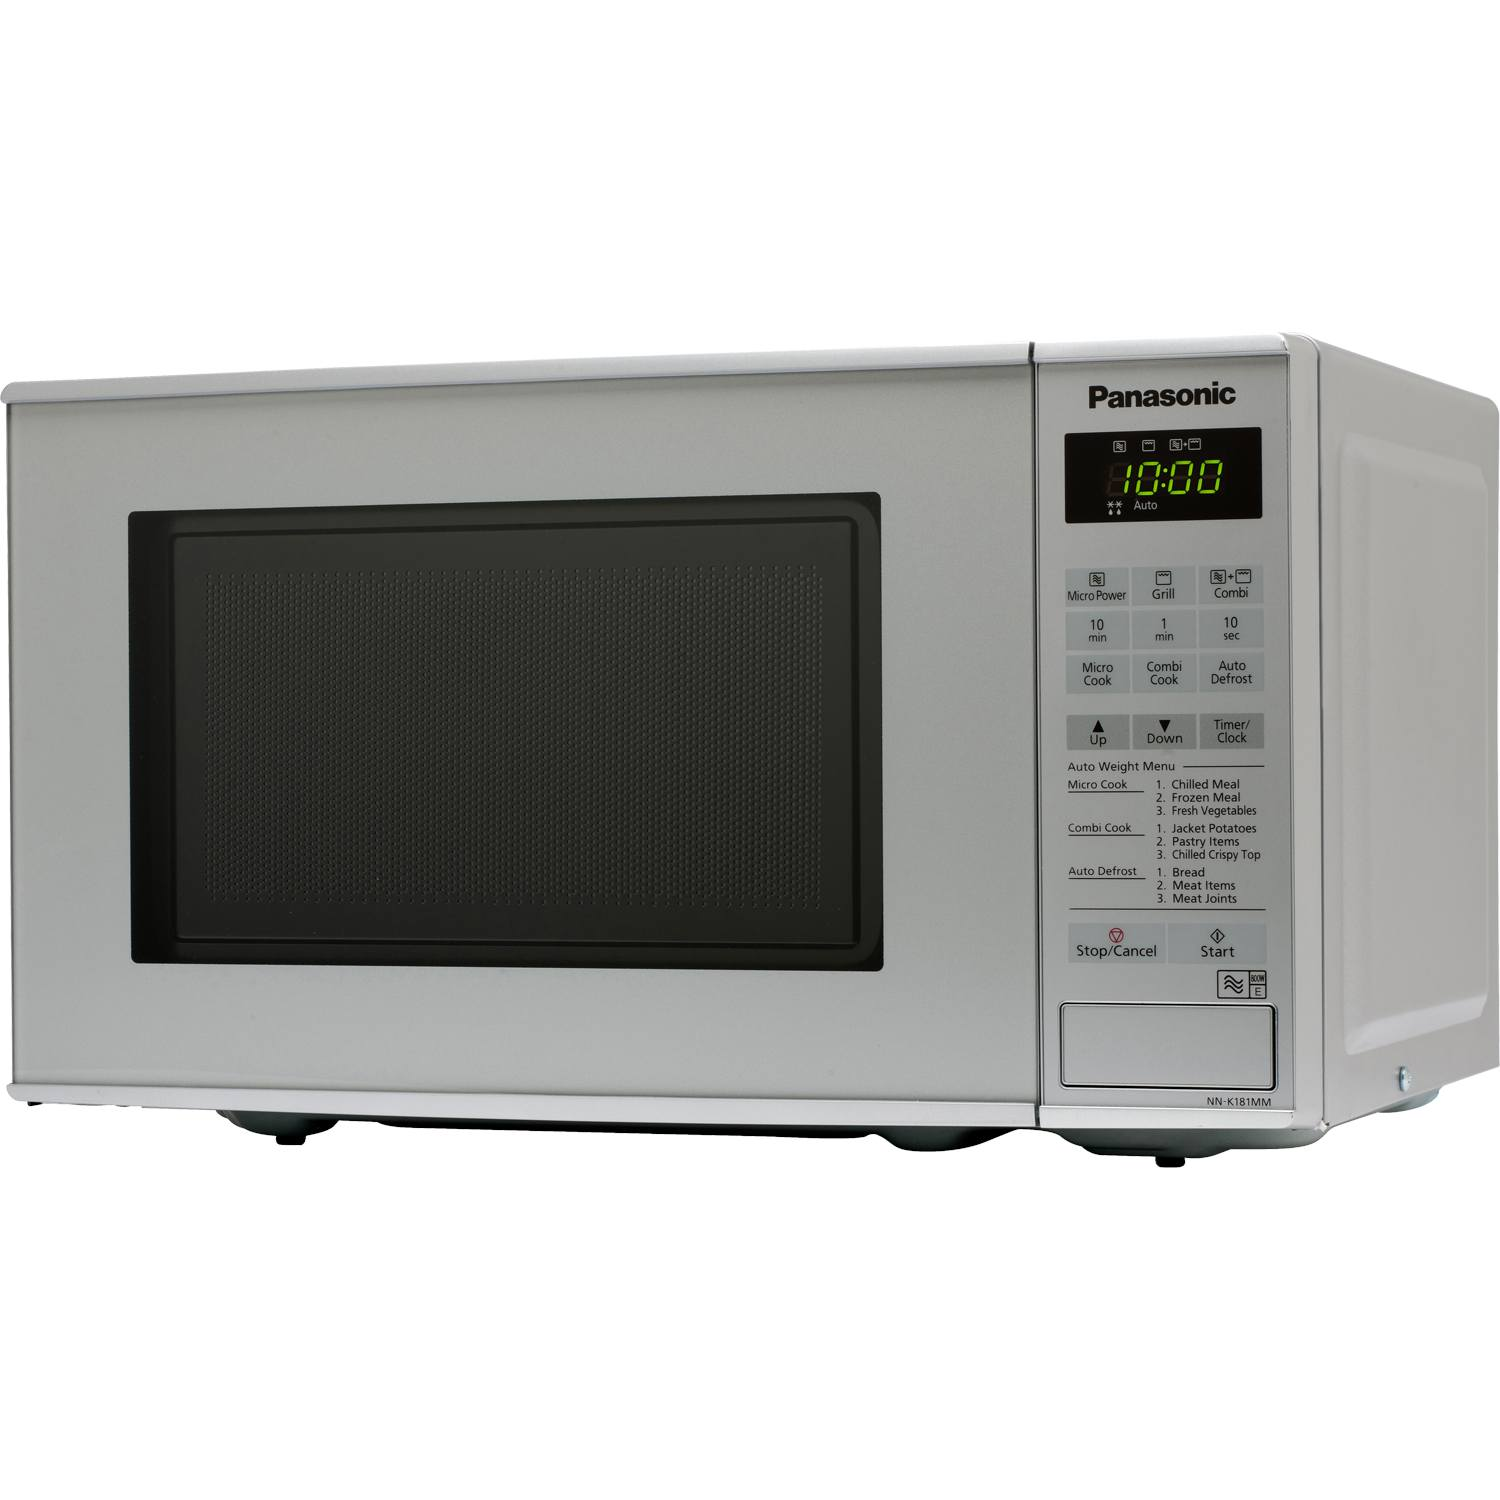 Small High Power Microwave Oven: Panasonic NNK181MMBPQ Compact 800W 20L Microwave Oven With